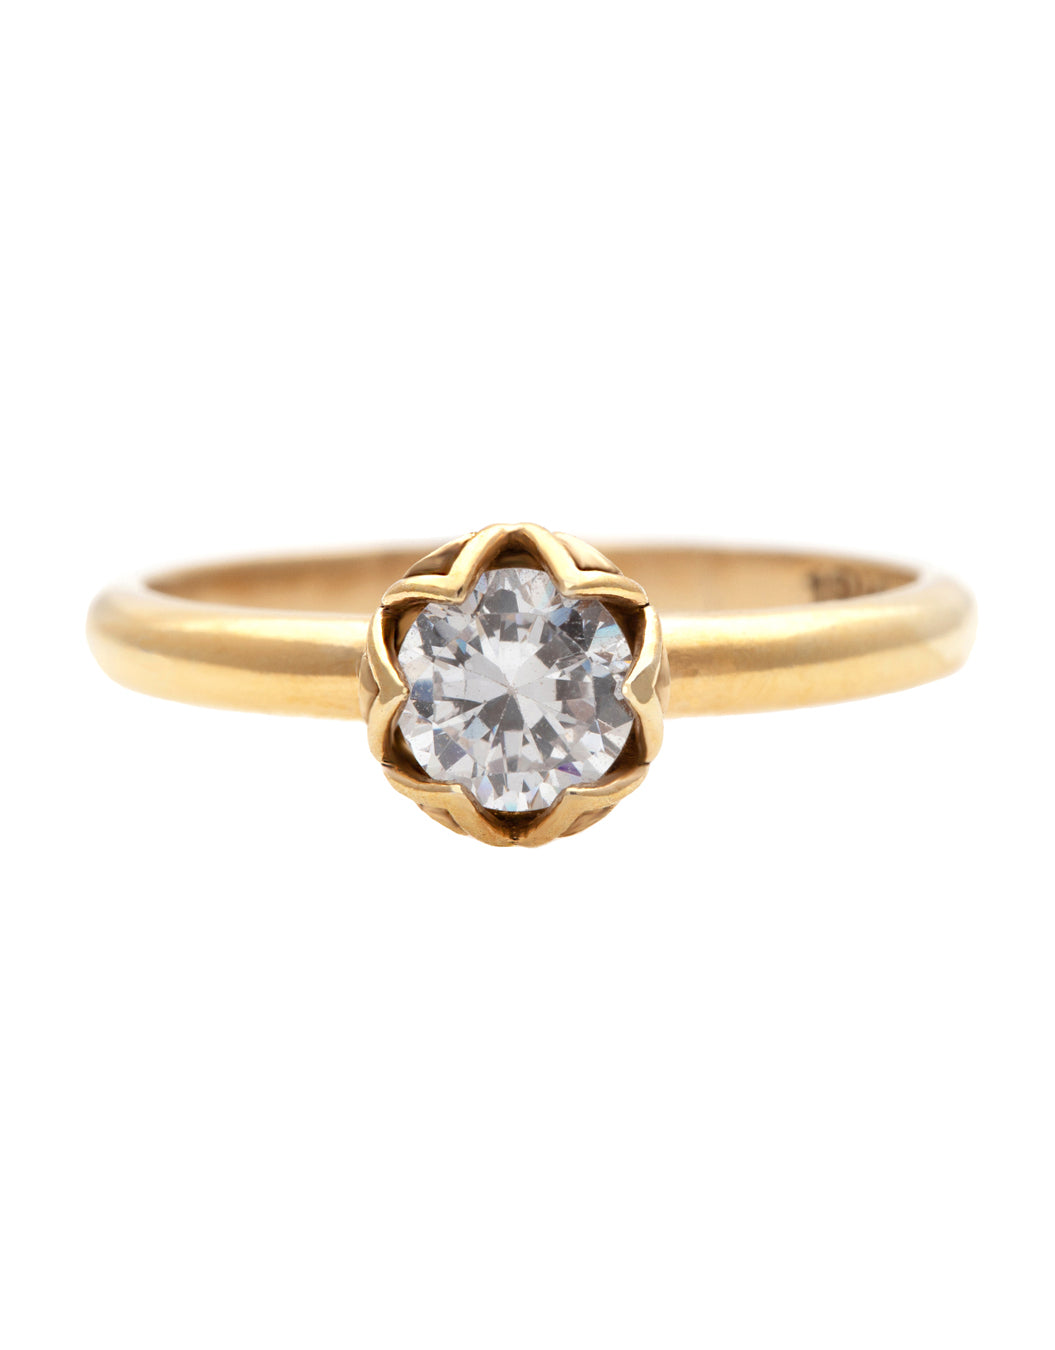 Michal Diamond Ring with Lab Created Diamonds